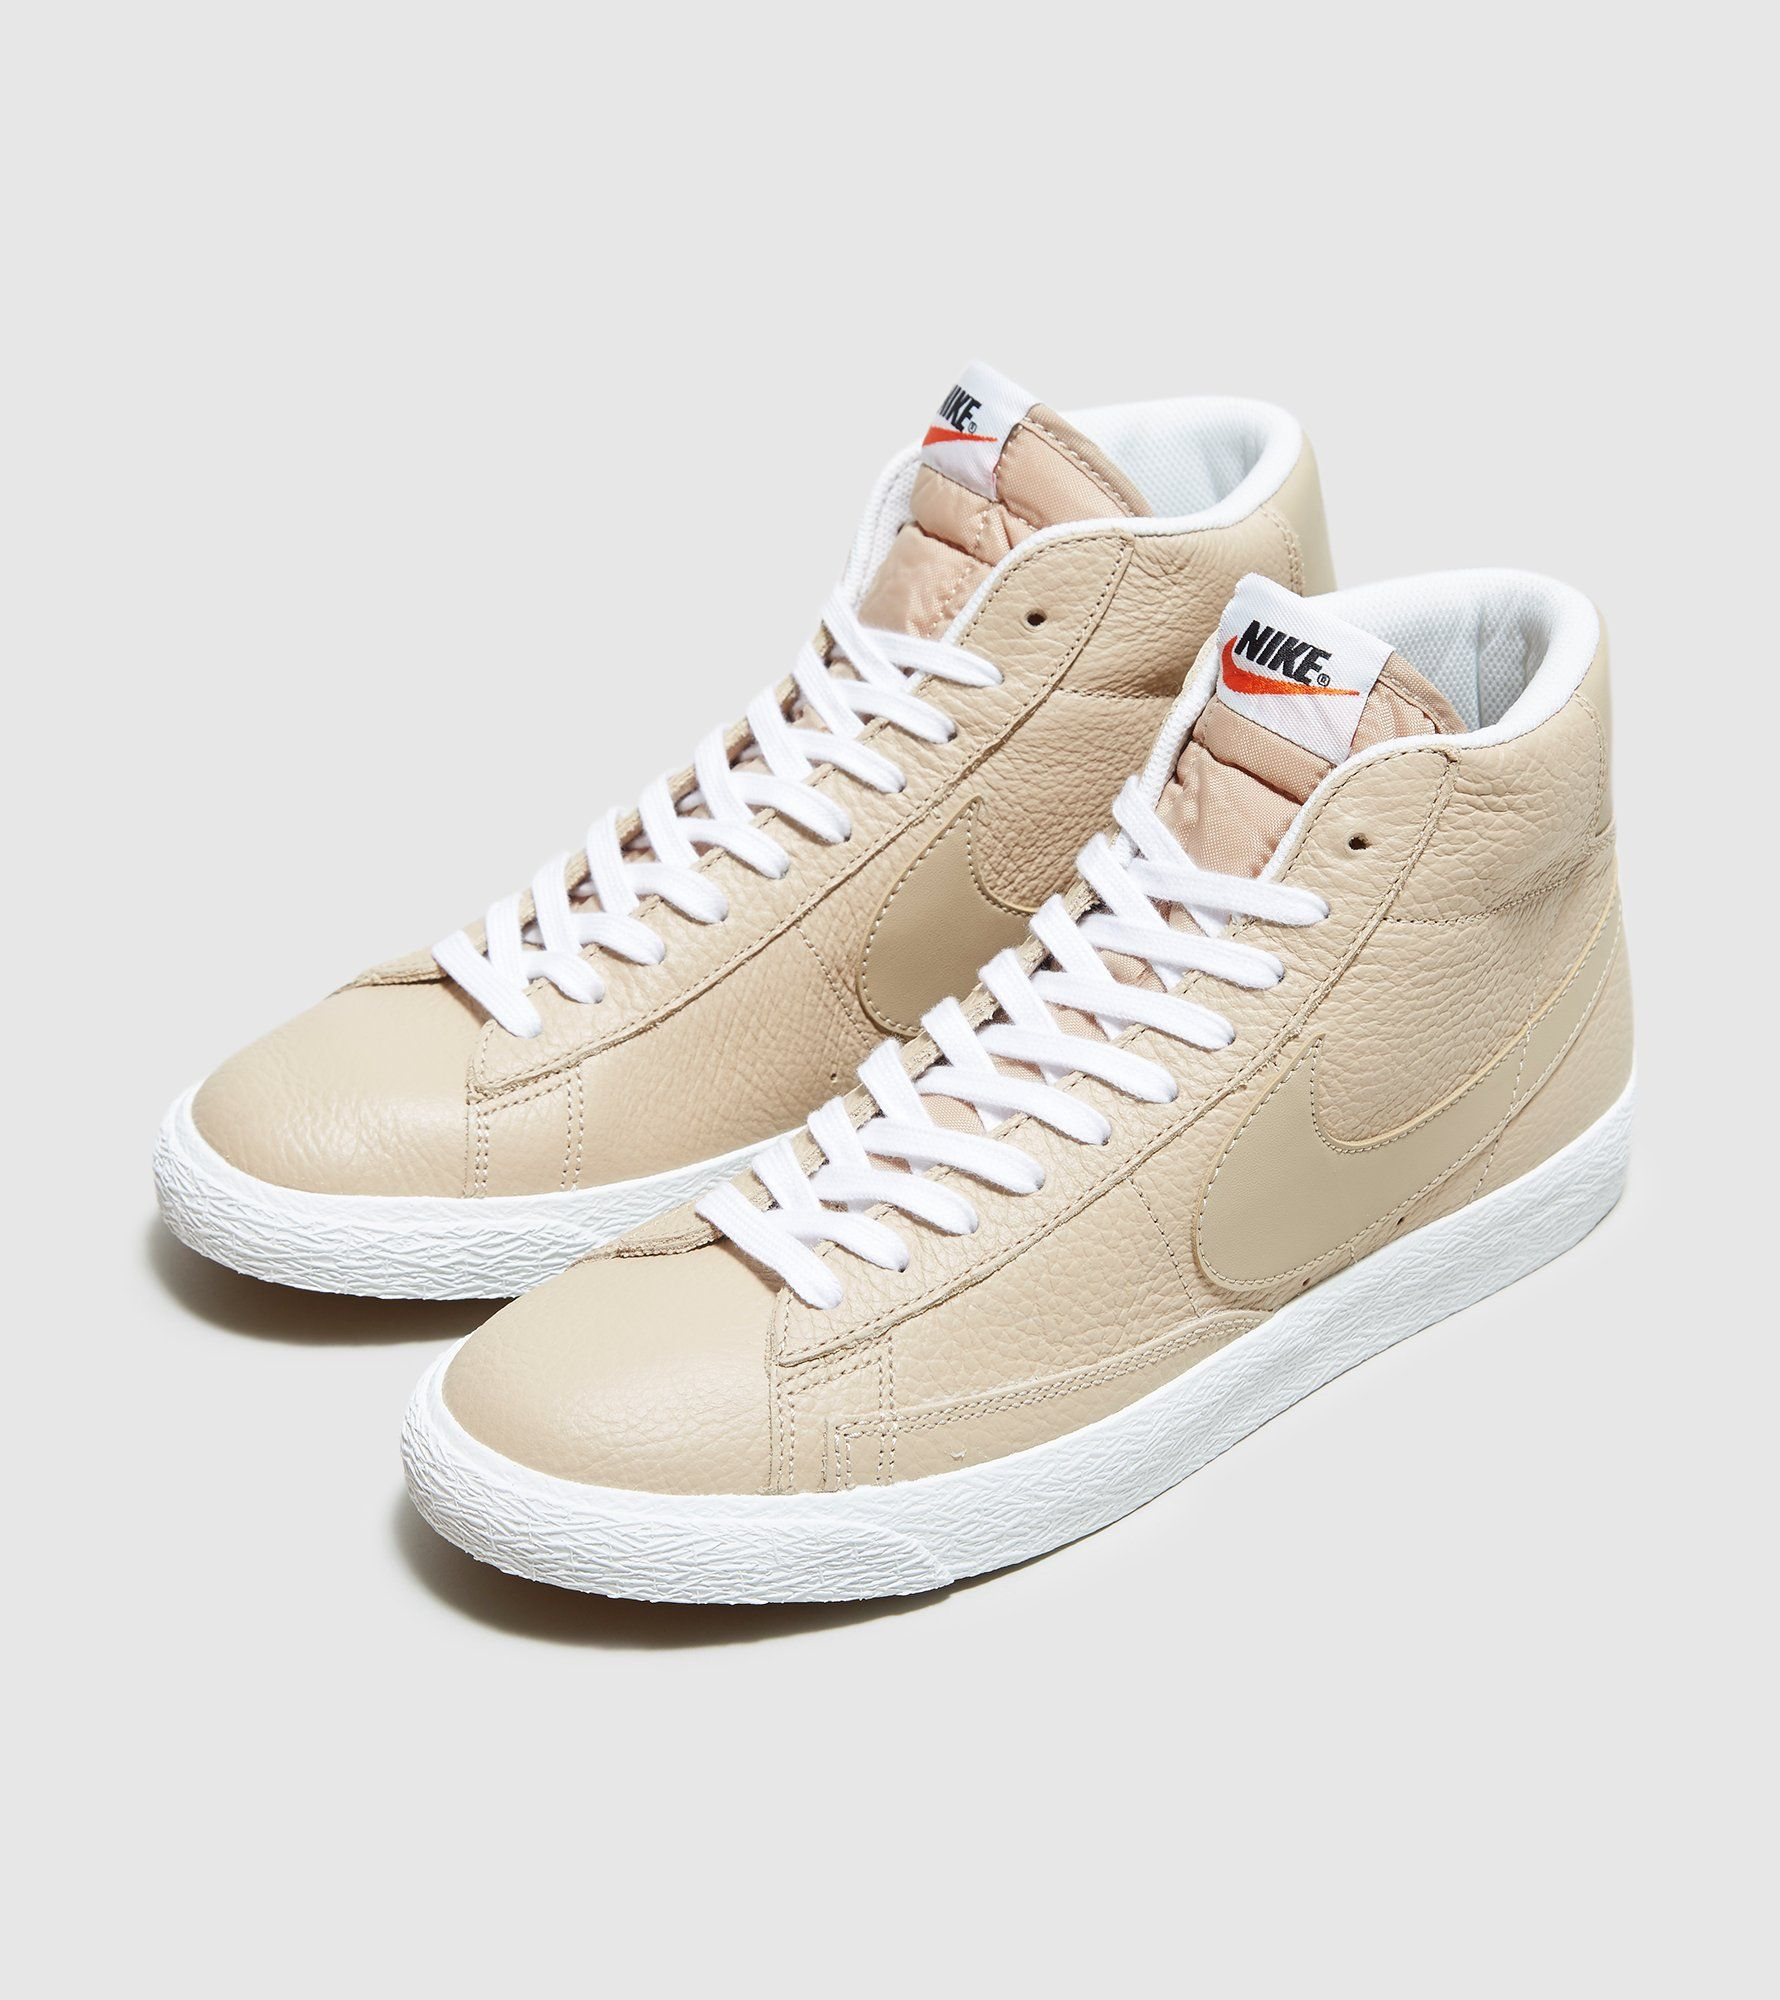 Buy low price, high quality leather nike blazer with worldwide shipping on oraplanrans.tk